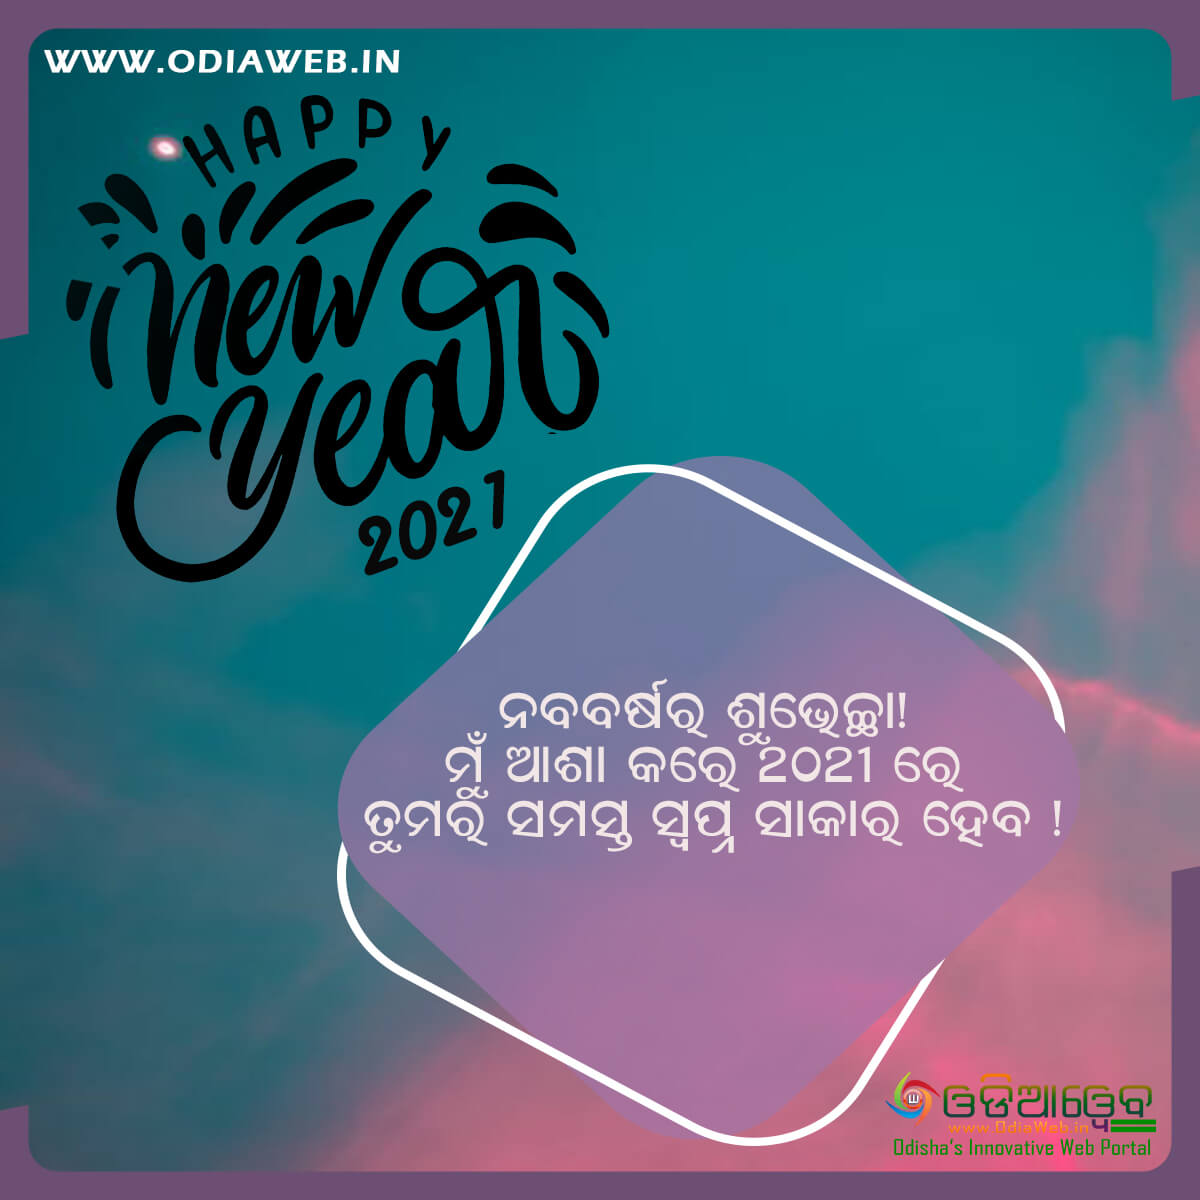 Happy New Year 2021 Wishes Odia (11)